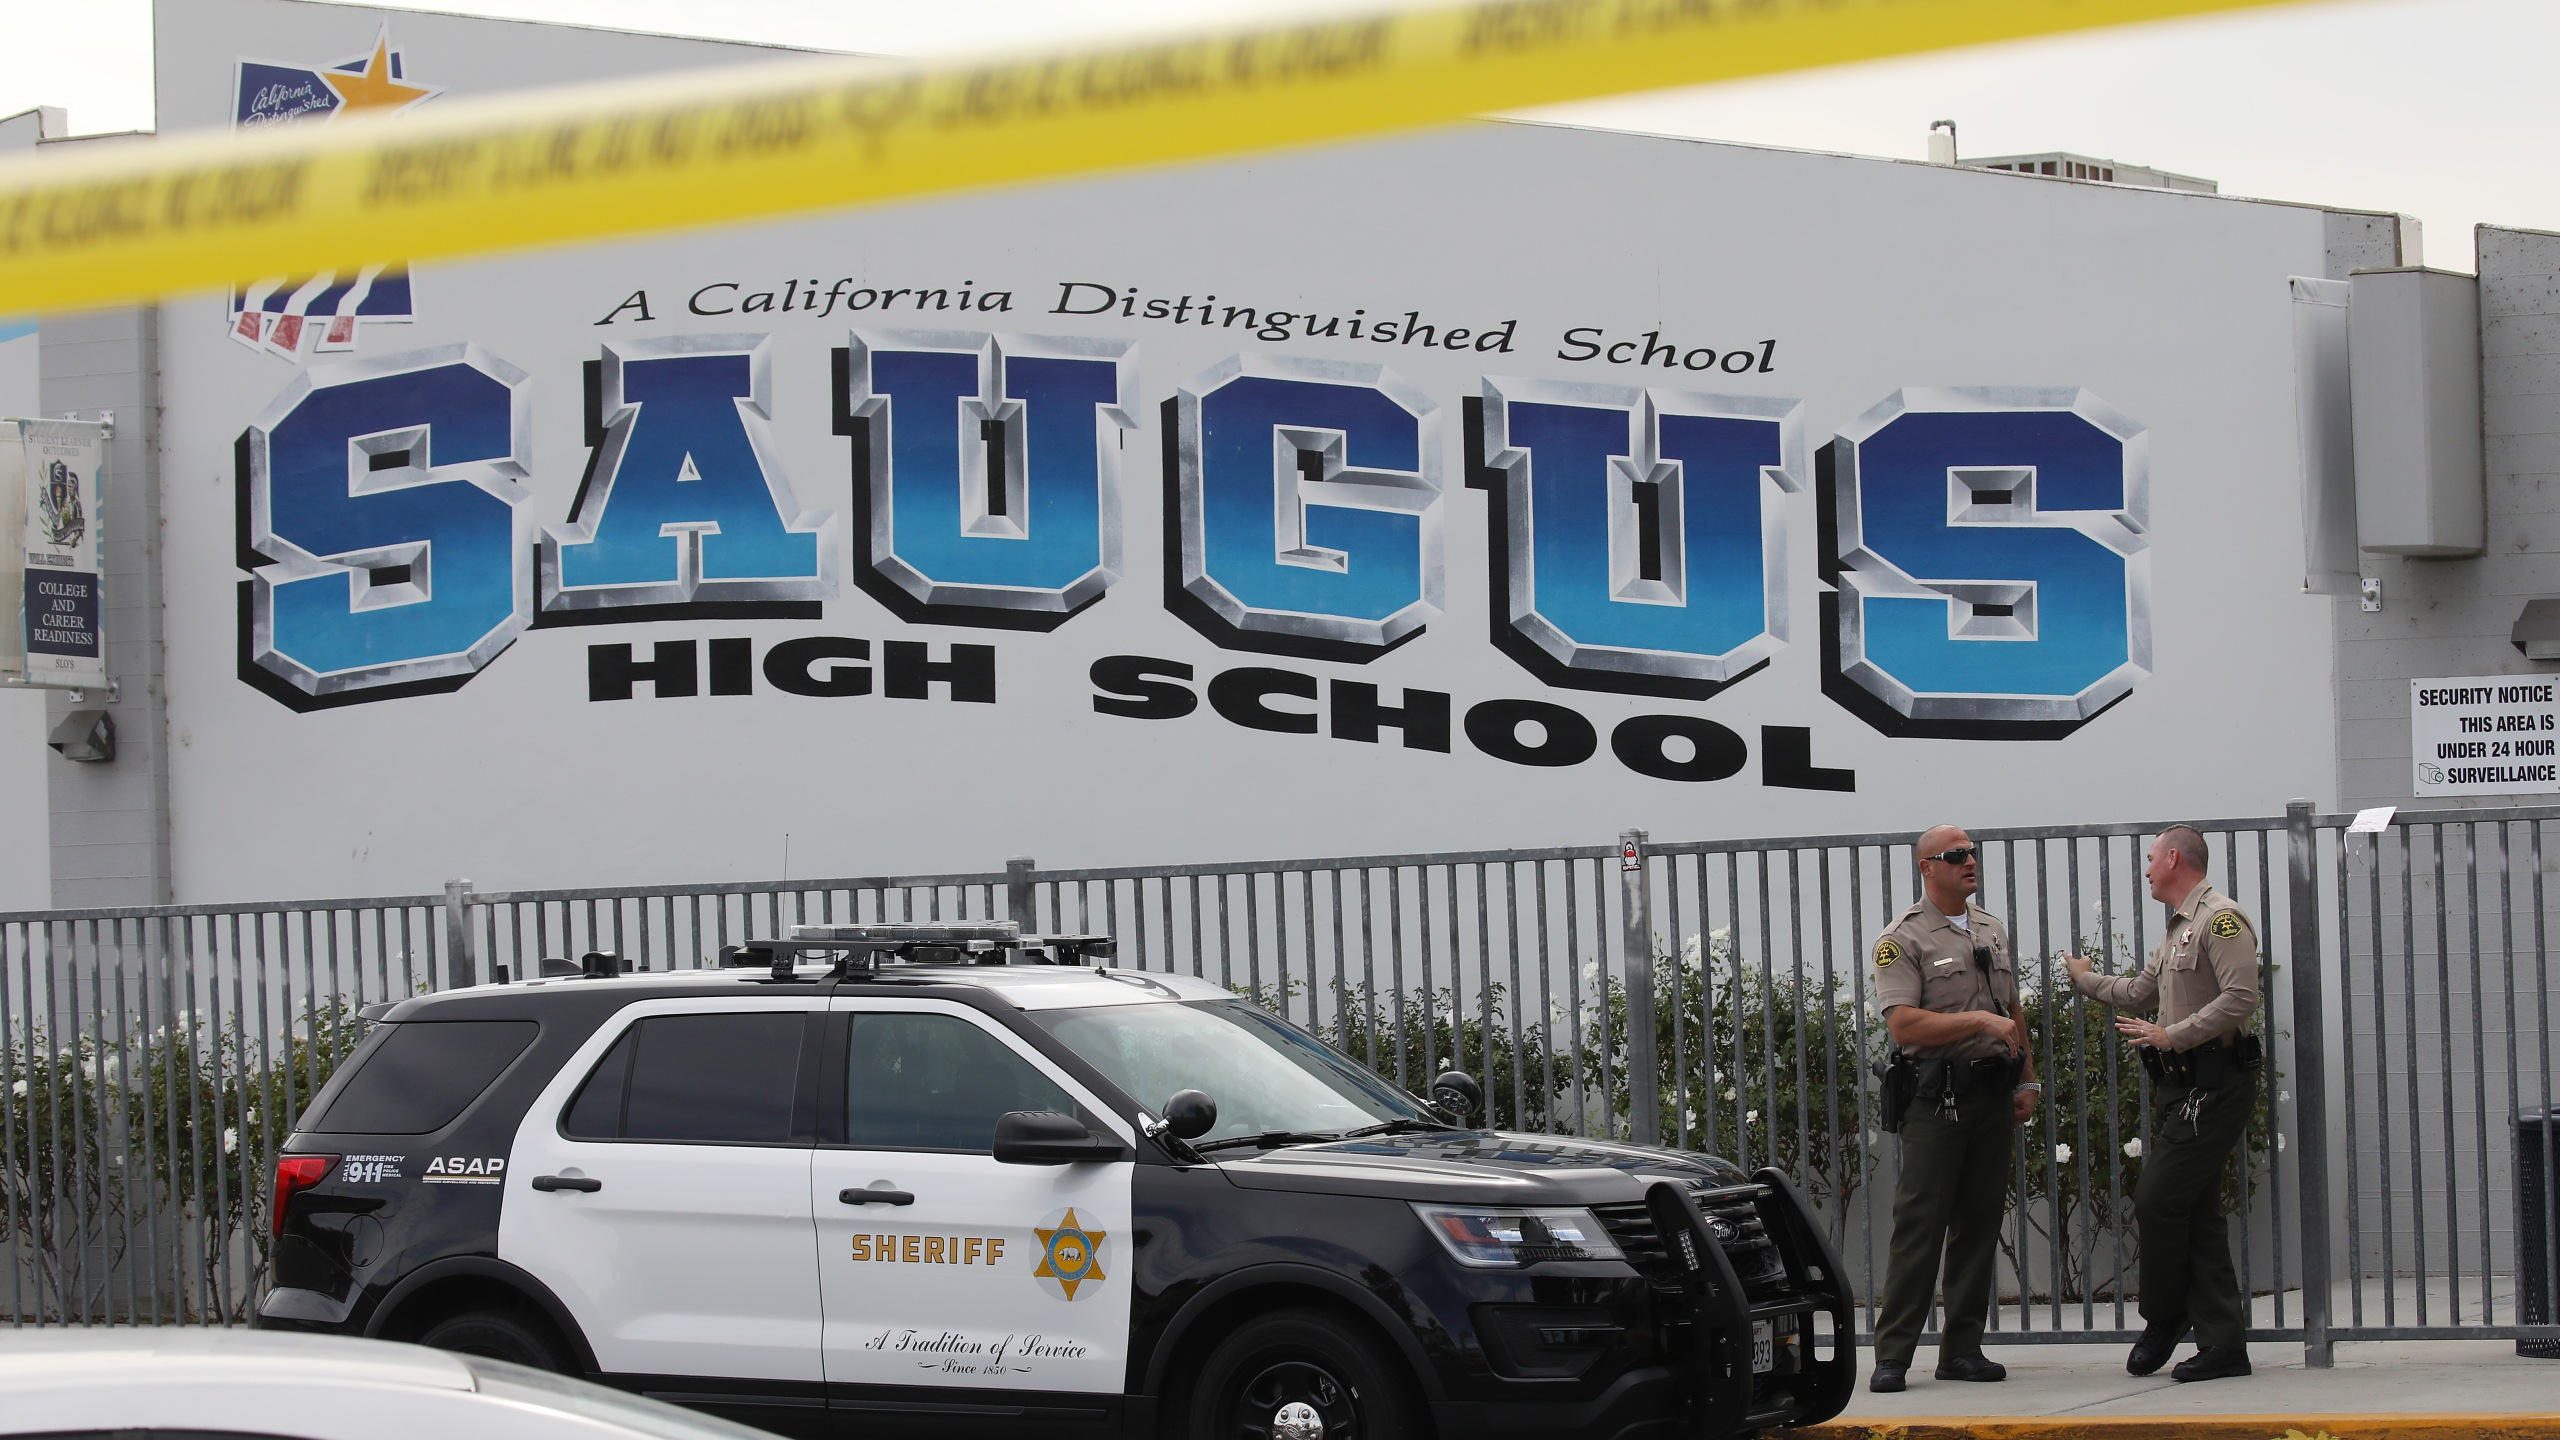 L.A. County sheriff's deputies are positioned at Saugus High School in Santa Clarita on Nov. 15, 2019, a day after a deadly shooting there. (Credit: Mario Tama/Getty Images)